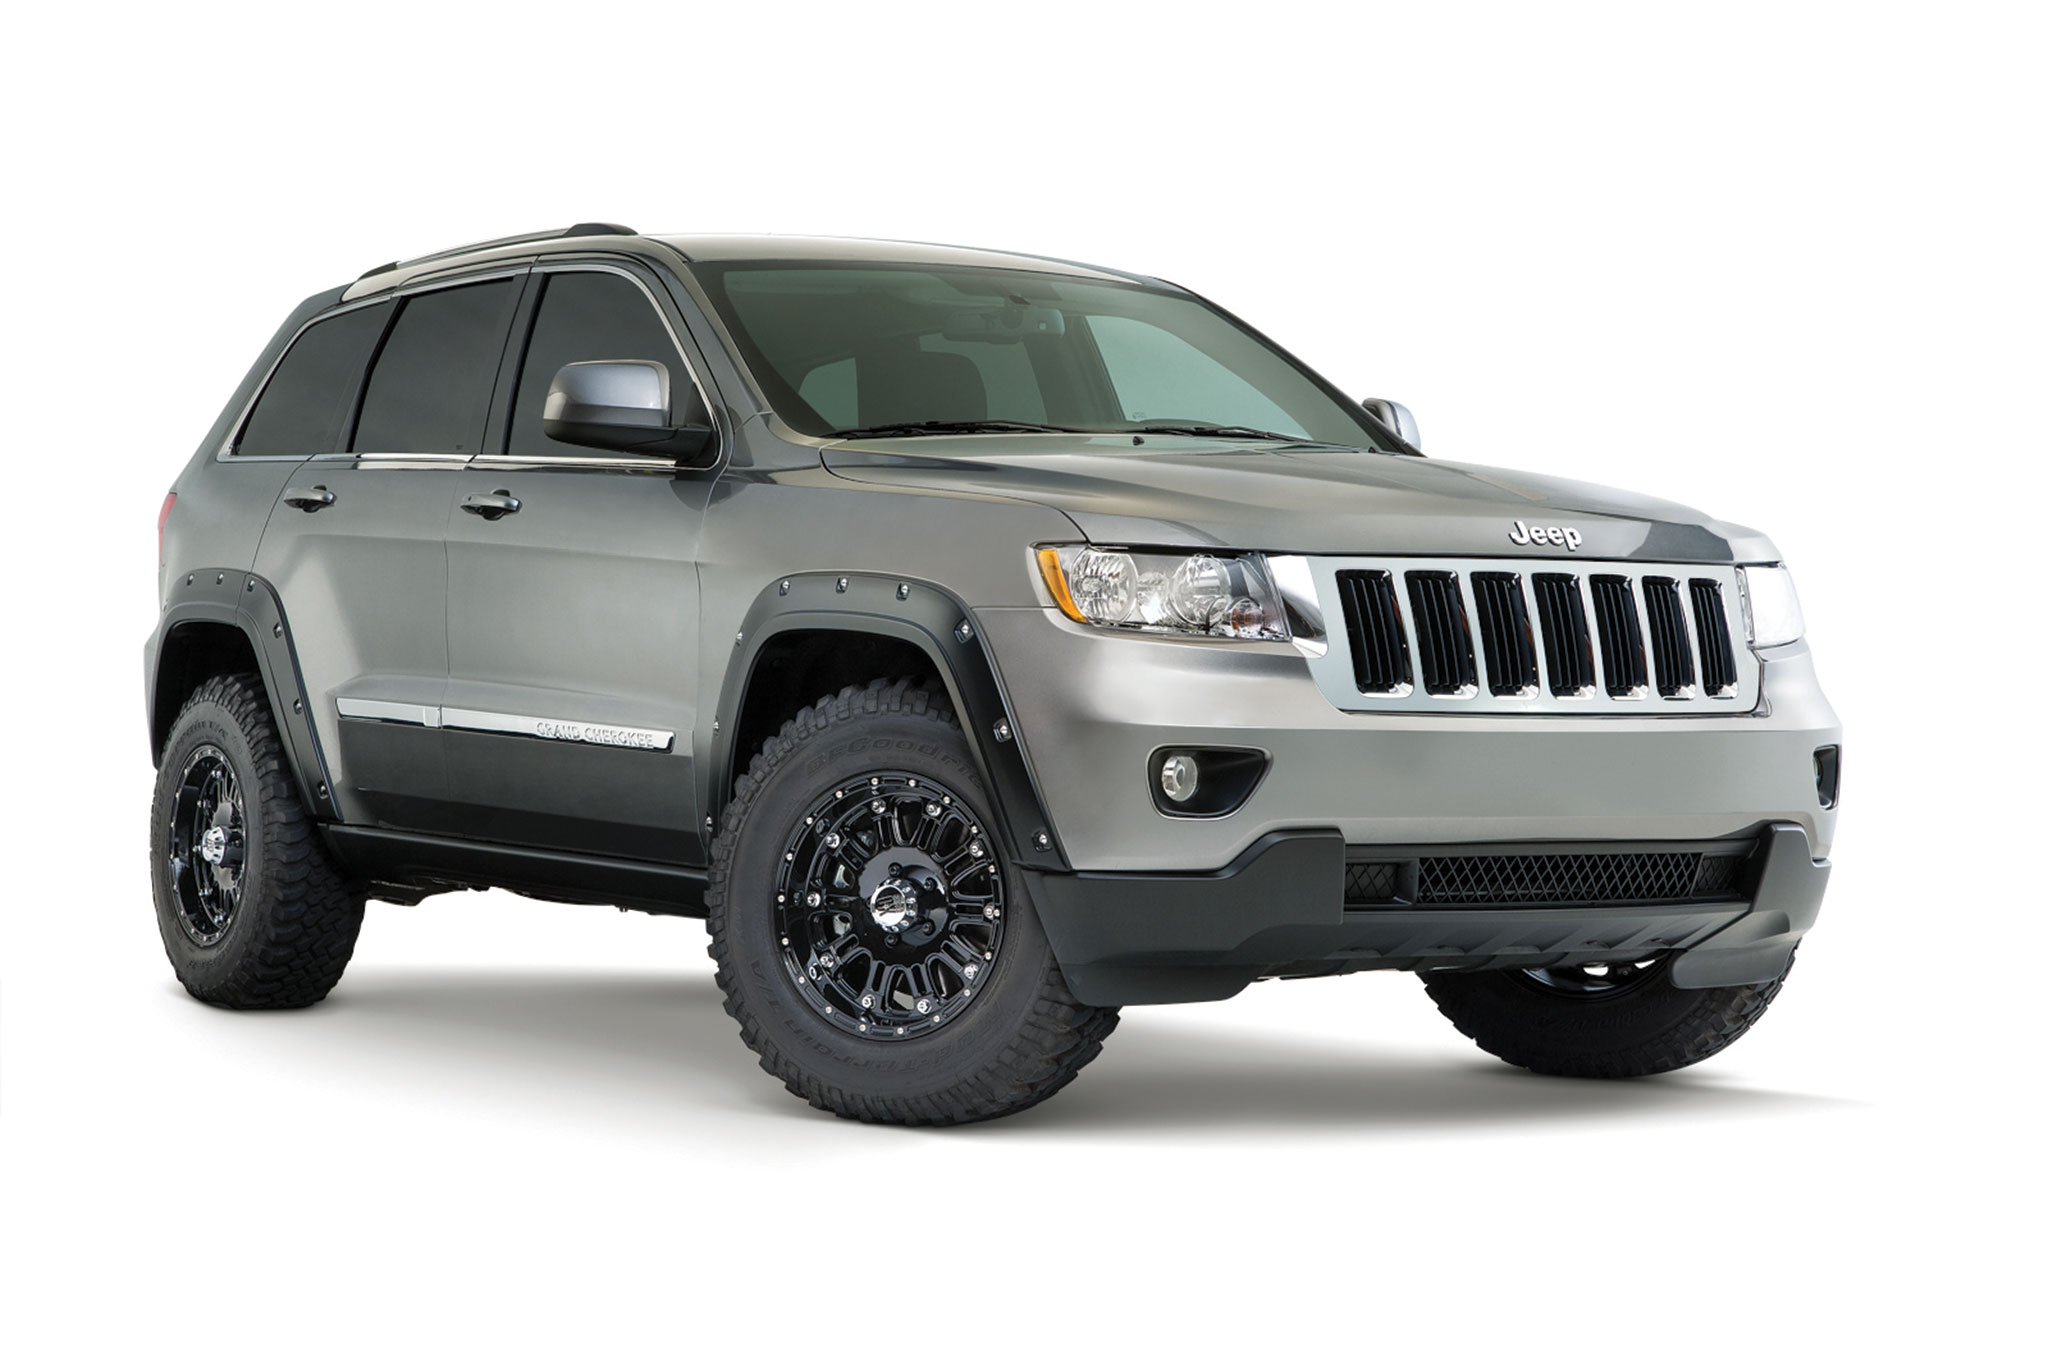 2014 jeep Grand Cherokee front three quarter